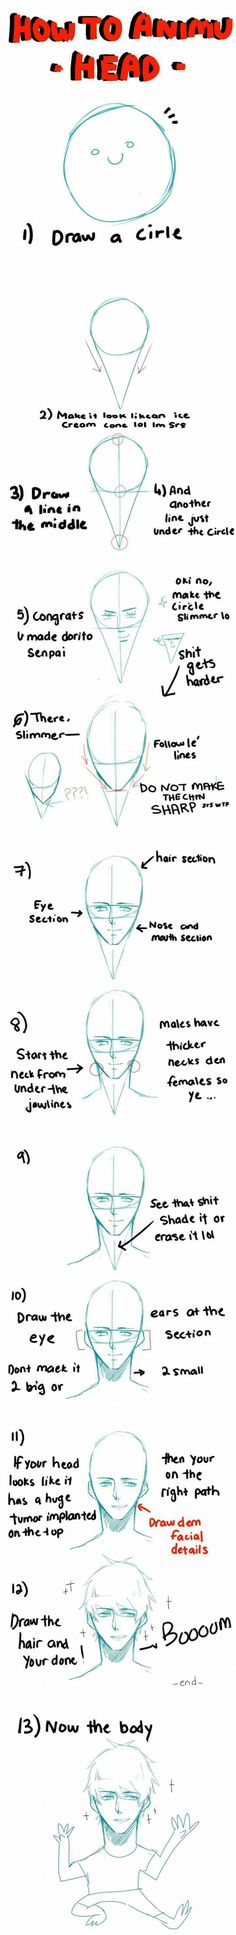 How to draw anime - 9GAG Pardon the language I am posting because of the instructions on how to draw faces